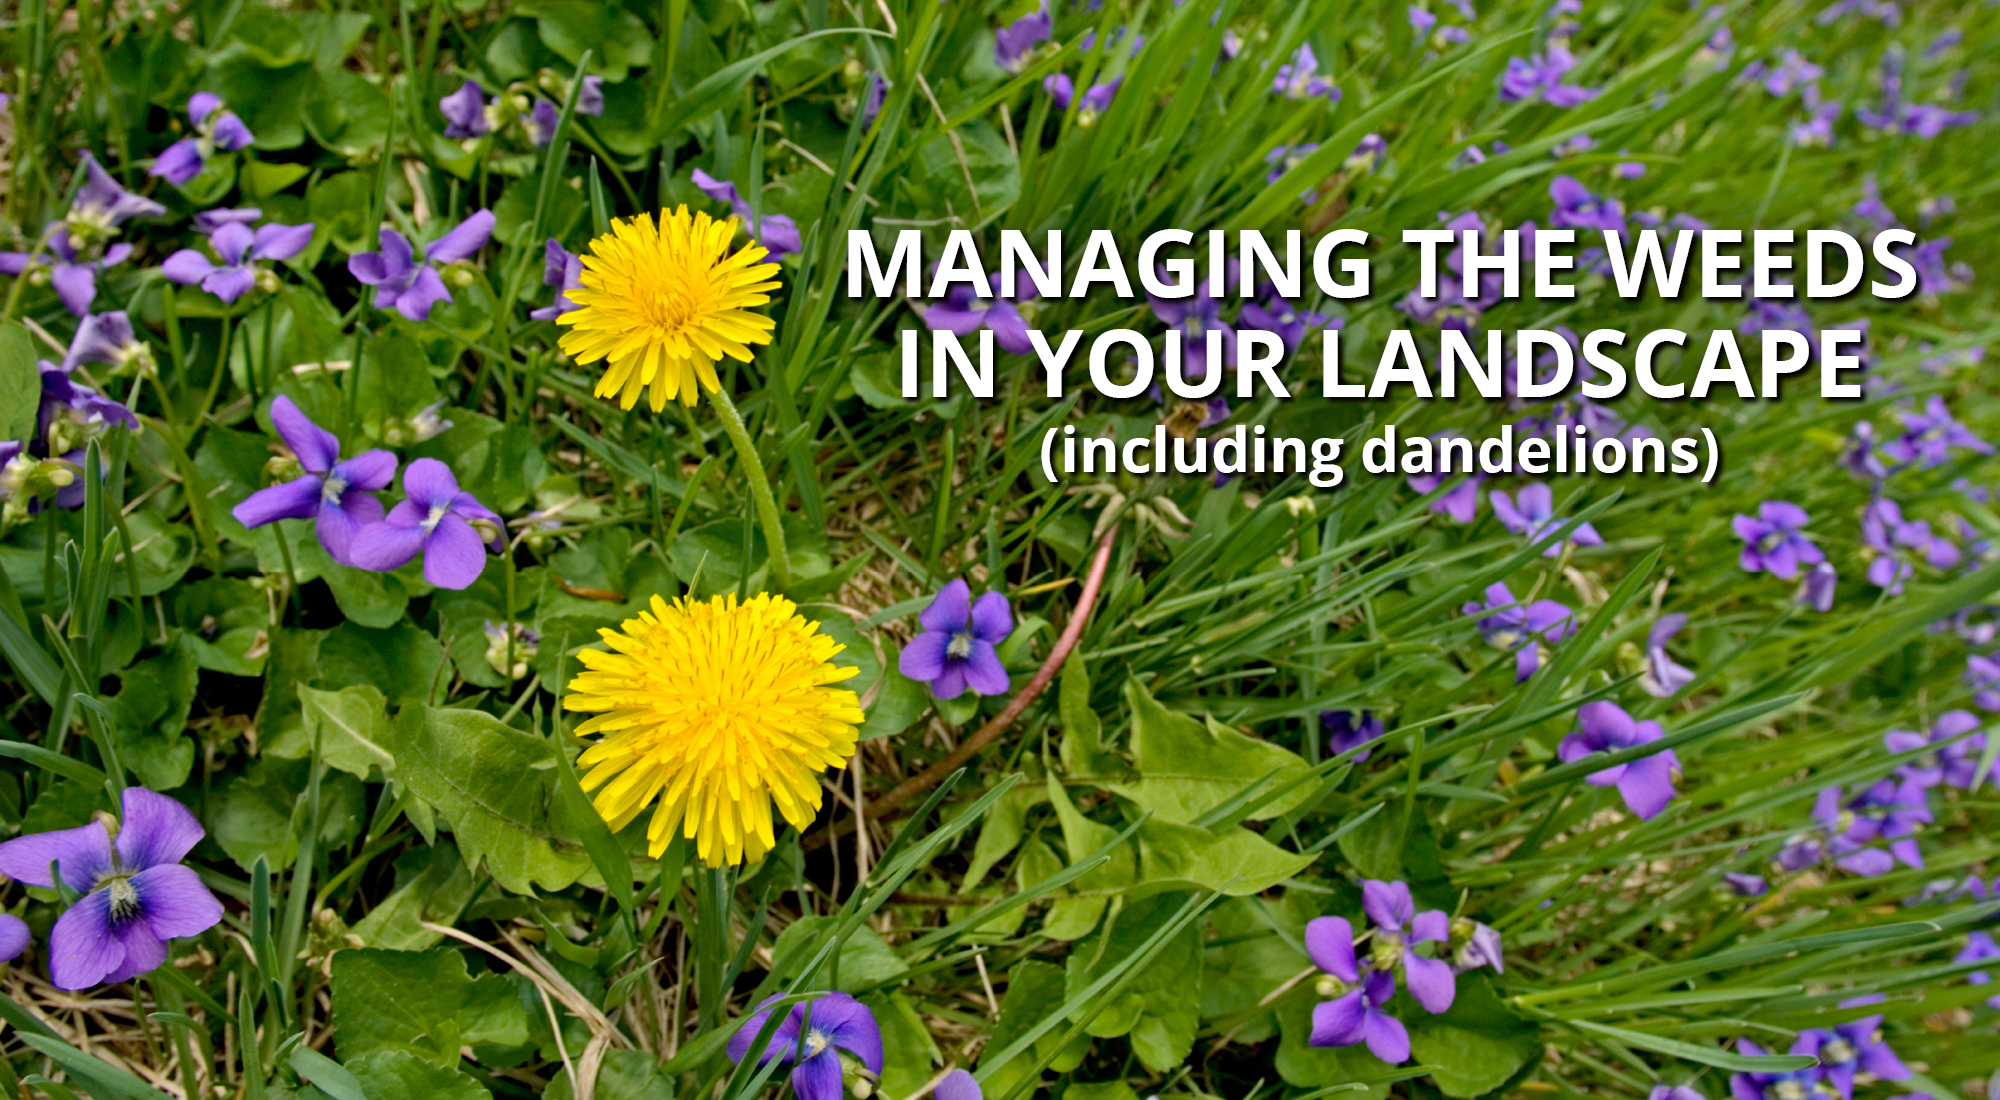 Managing Weeds in your Lawn and Landscape